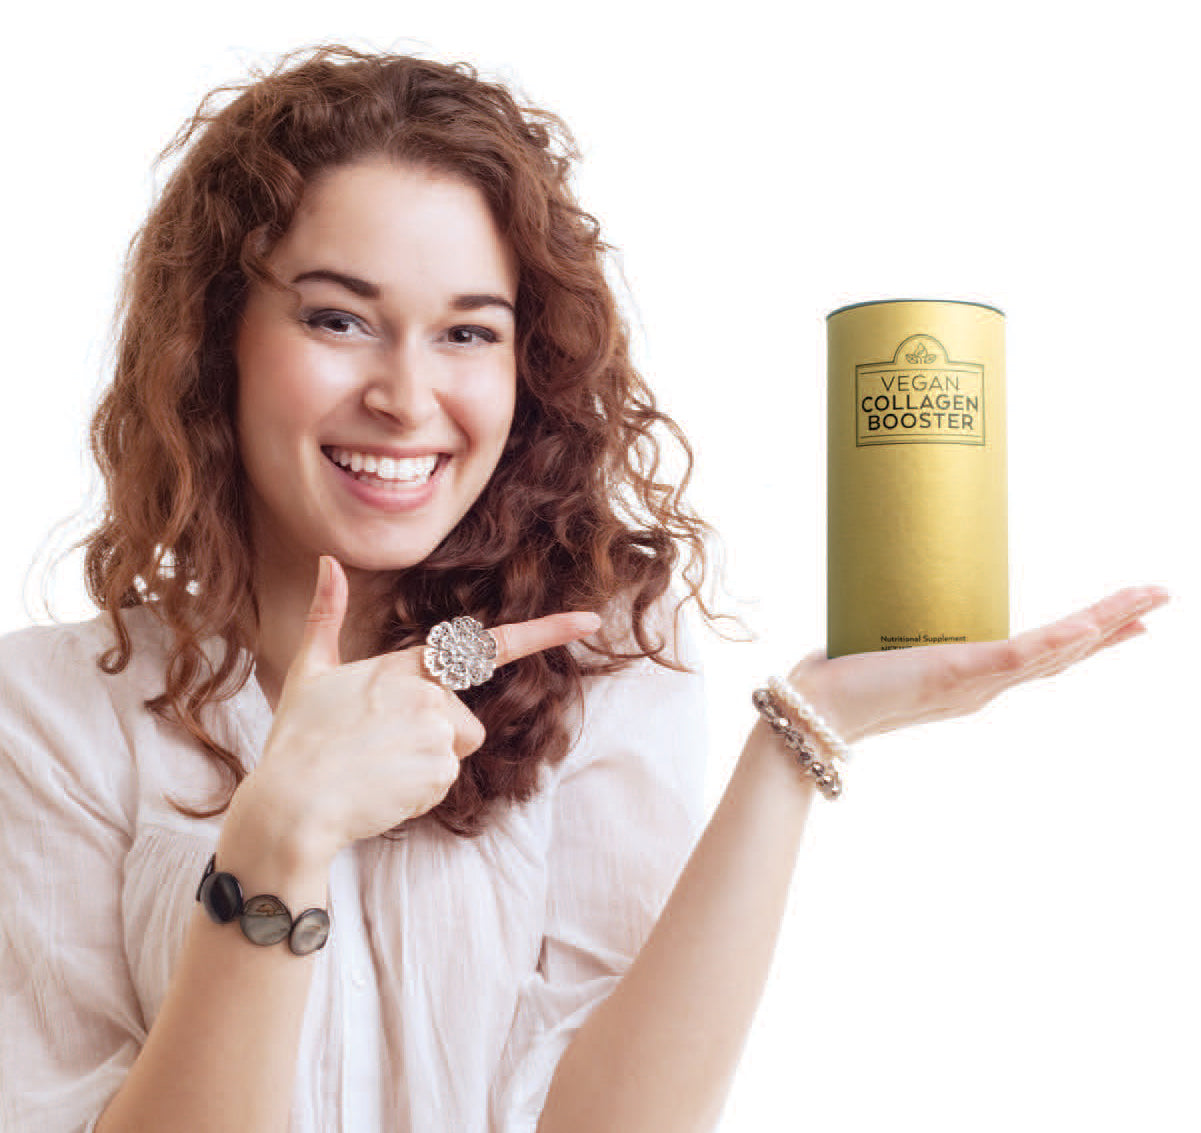 woman holding vegan collagen booster